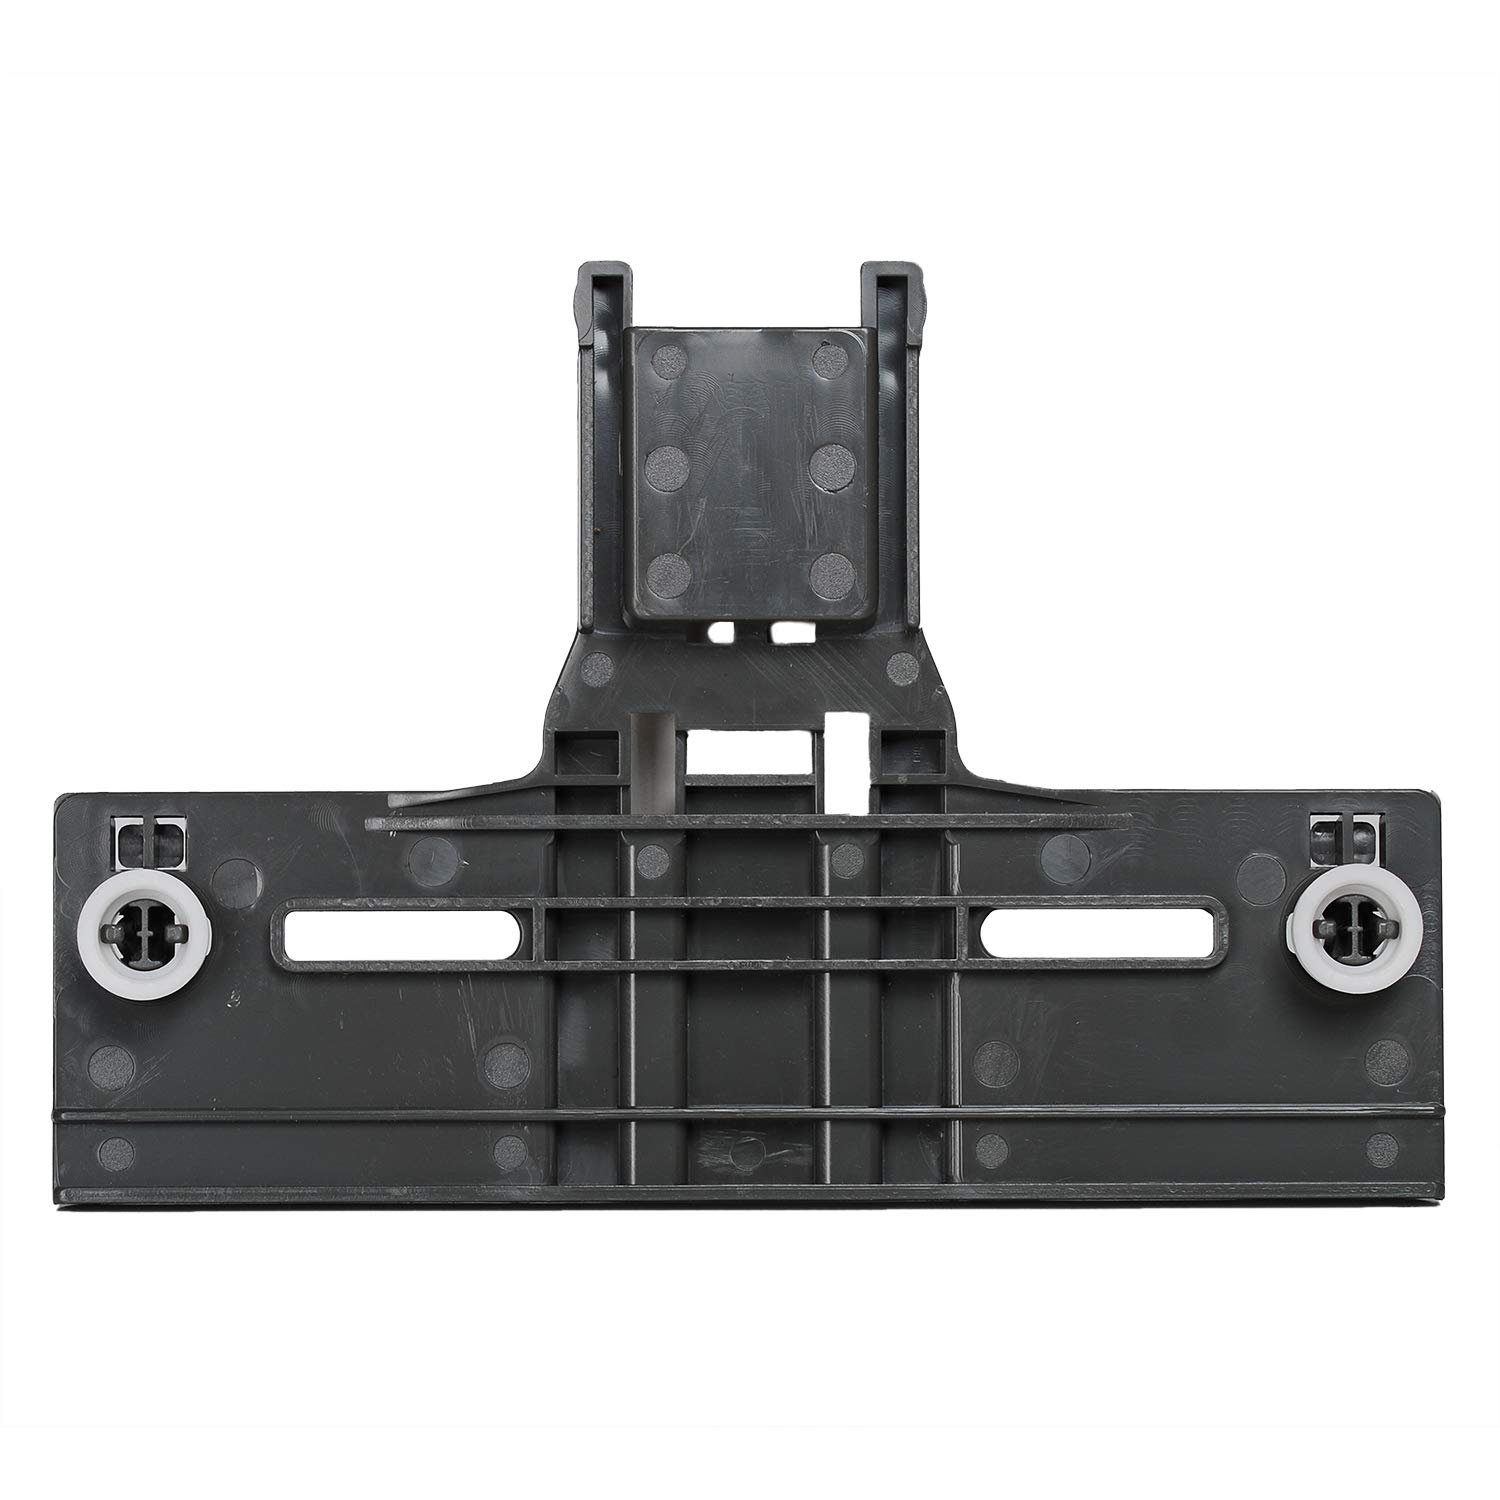 HIFROM W10350376 Dishwasher Top Rack Adjuster Replacement part for Whirlpool KitchenAid Kenmore Jenn-Air Dish Rack Replace W10712394 W10350376 AP5956100 PS10064063 (1 Pc)